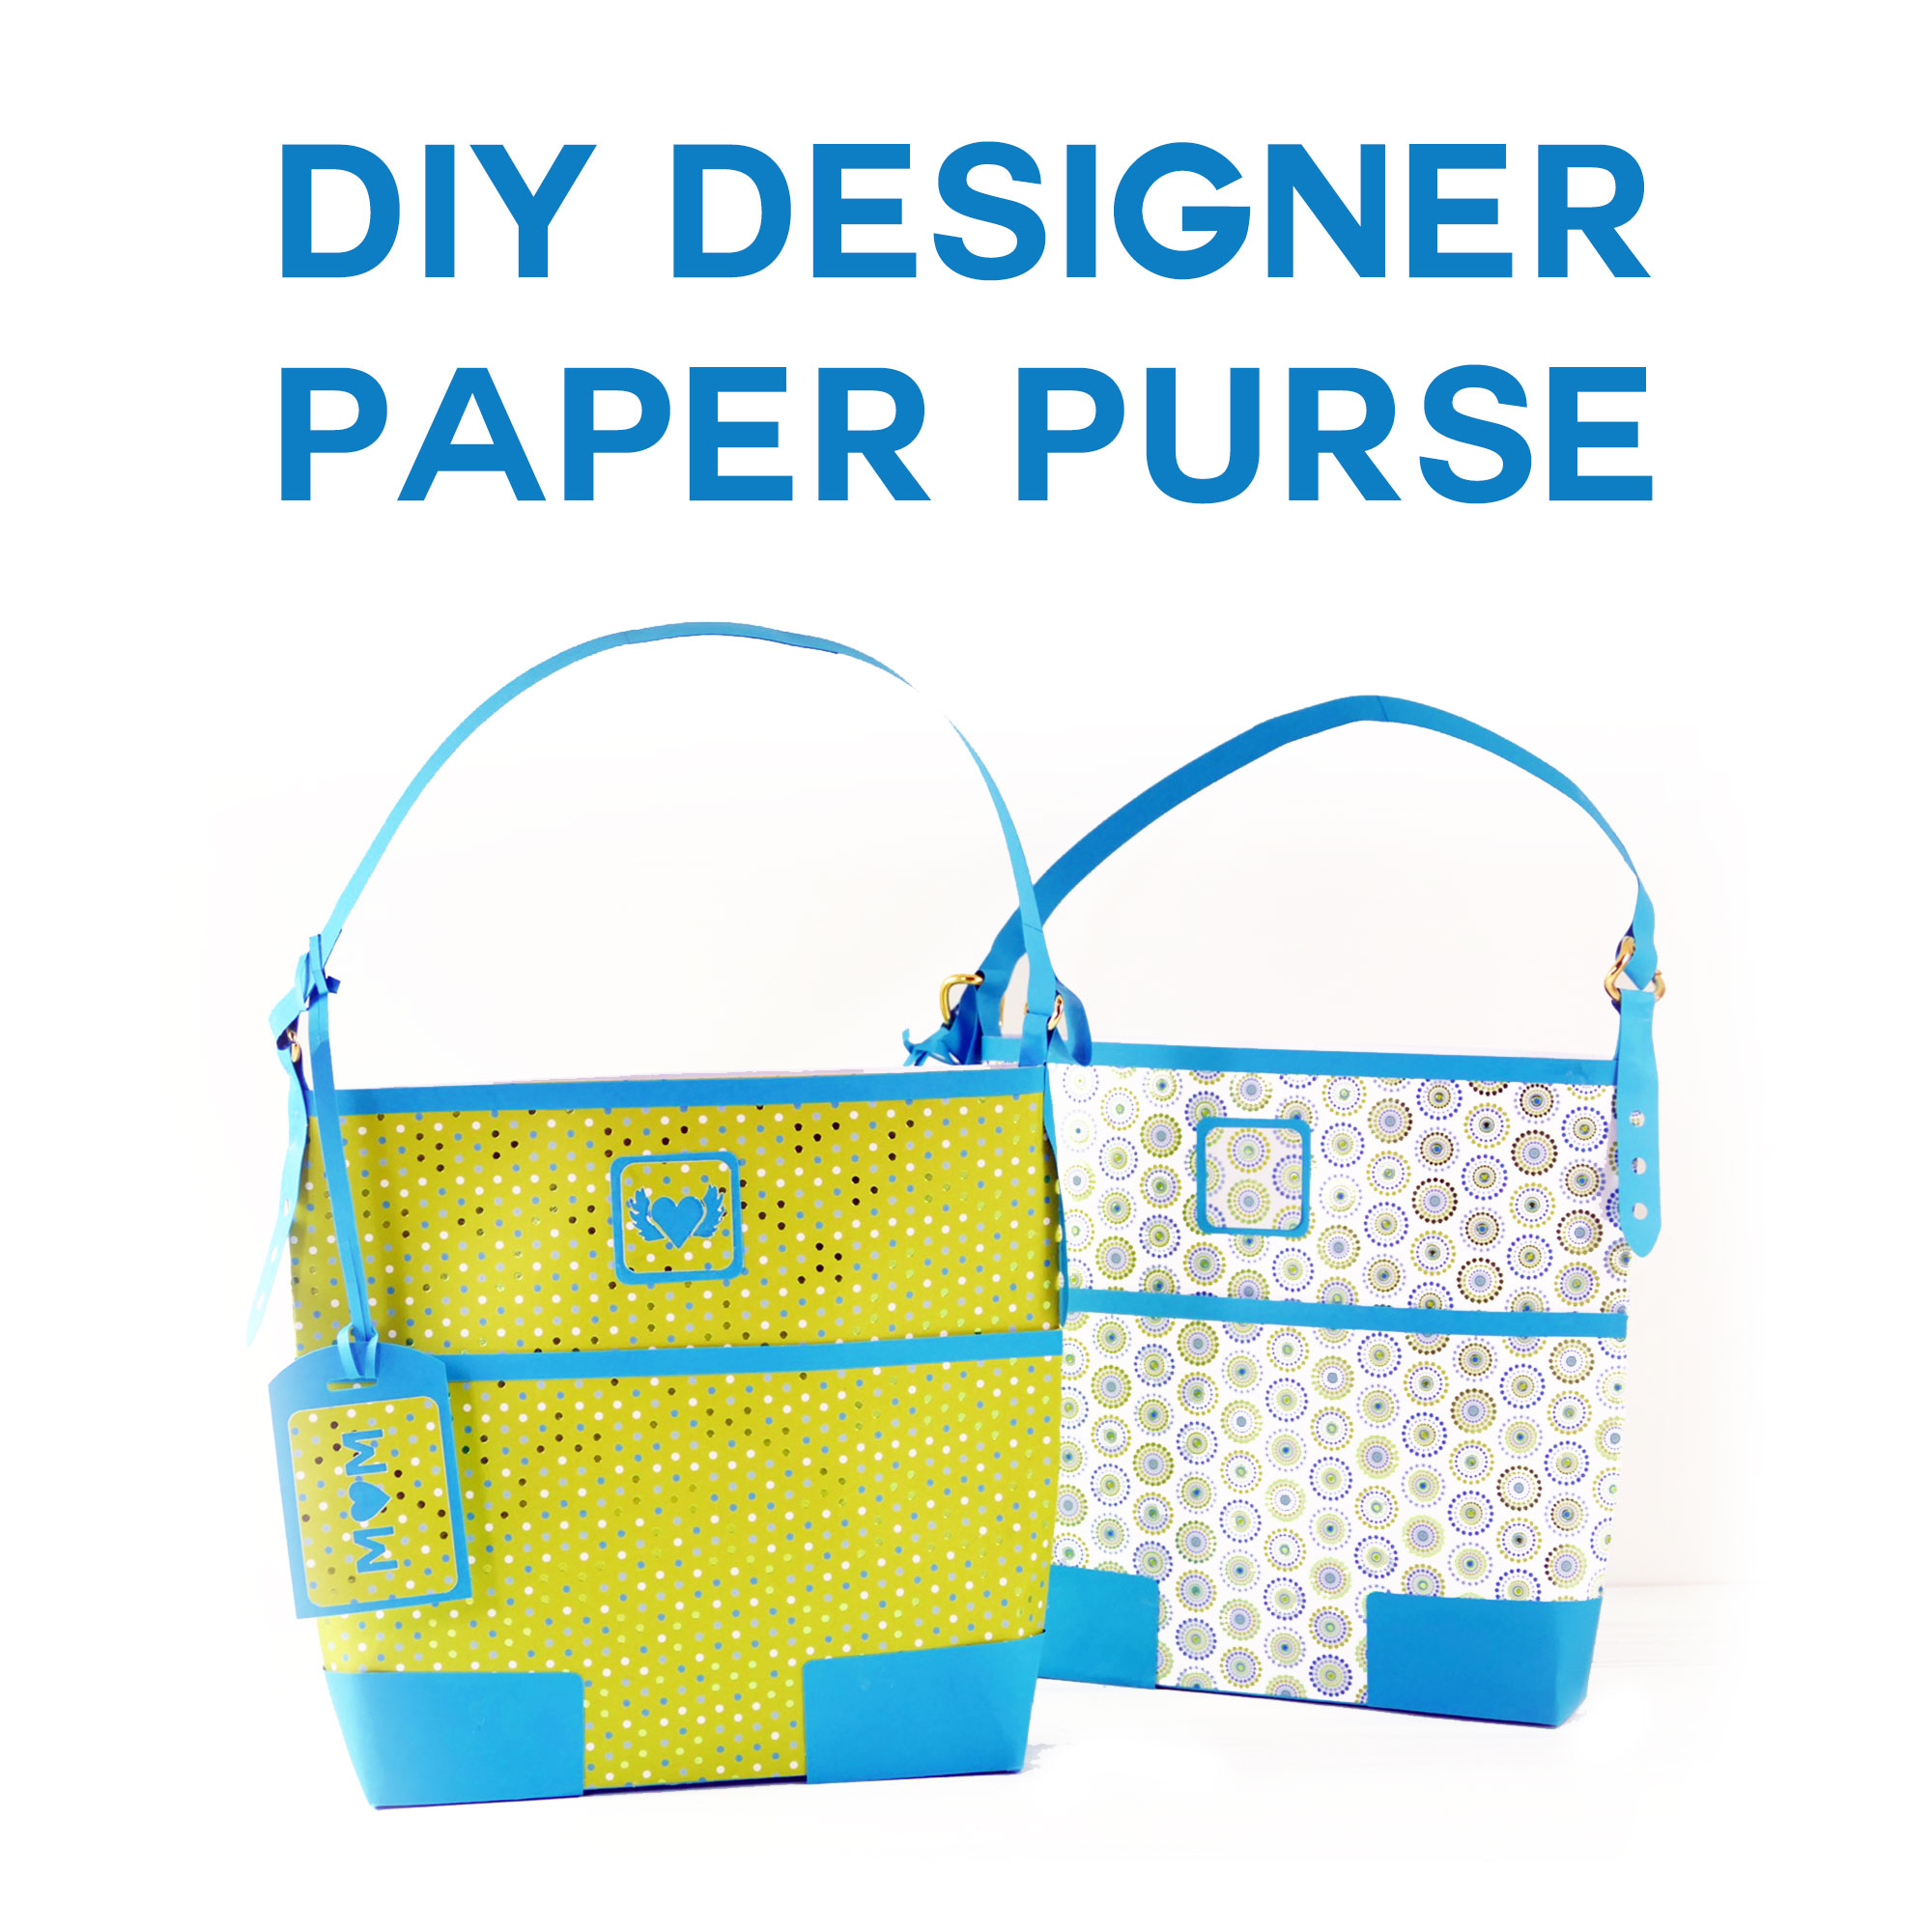 3a46e1c43796 DIY Designer Paper Purse Makes a Gorgeous Gift Bag! - Jennifer Maker